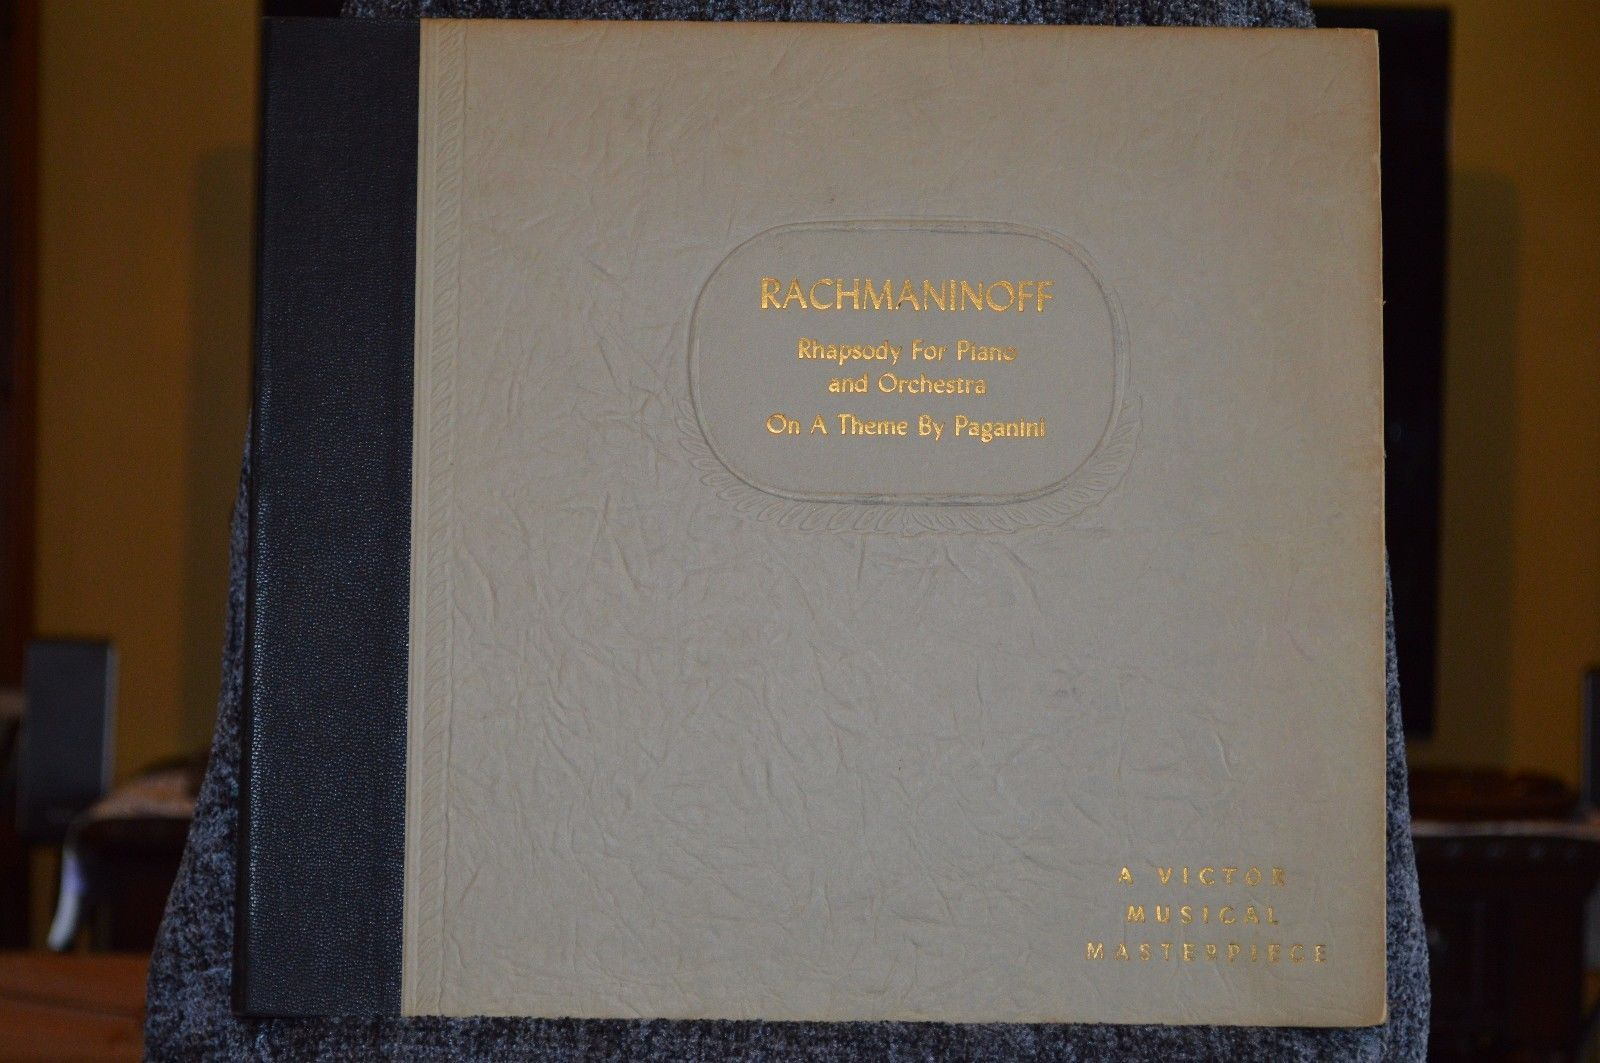 Rhapsody for Piano and Orchestra on a Theme By Paganini, vinyl